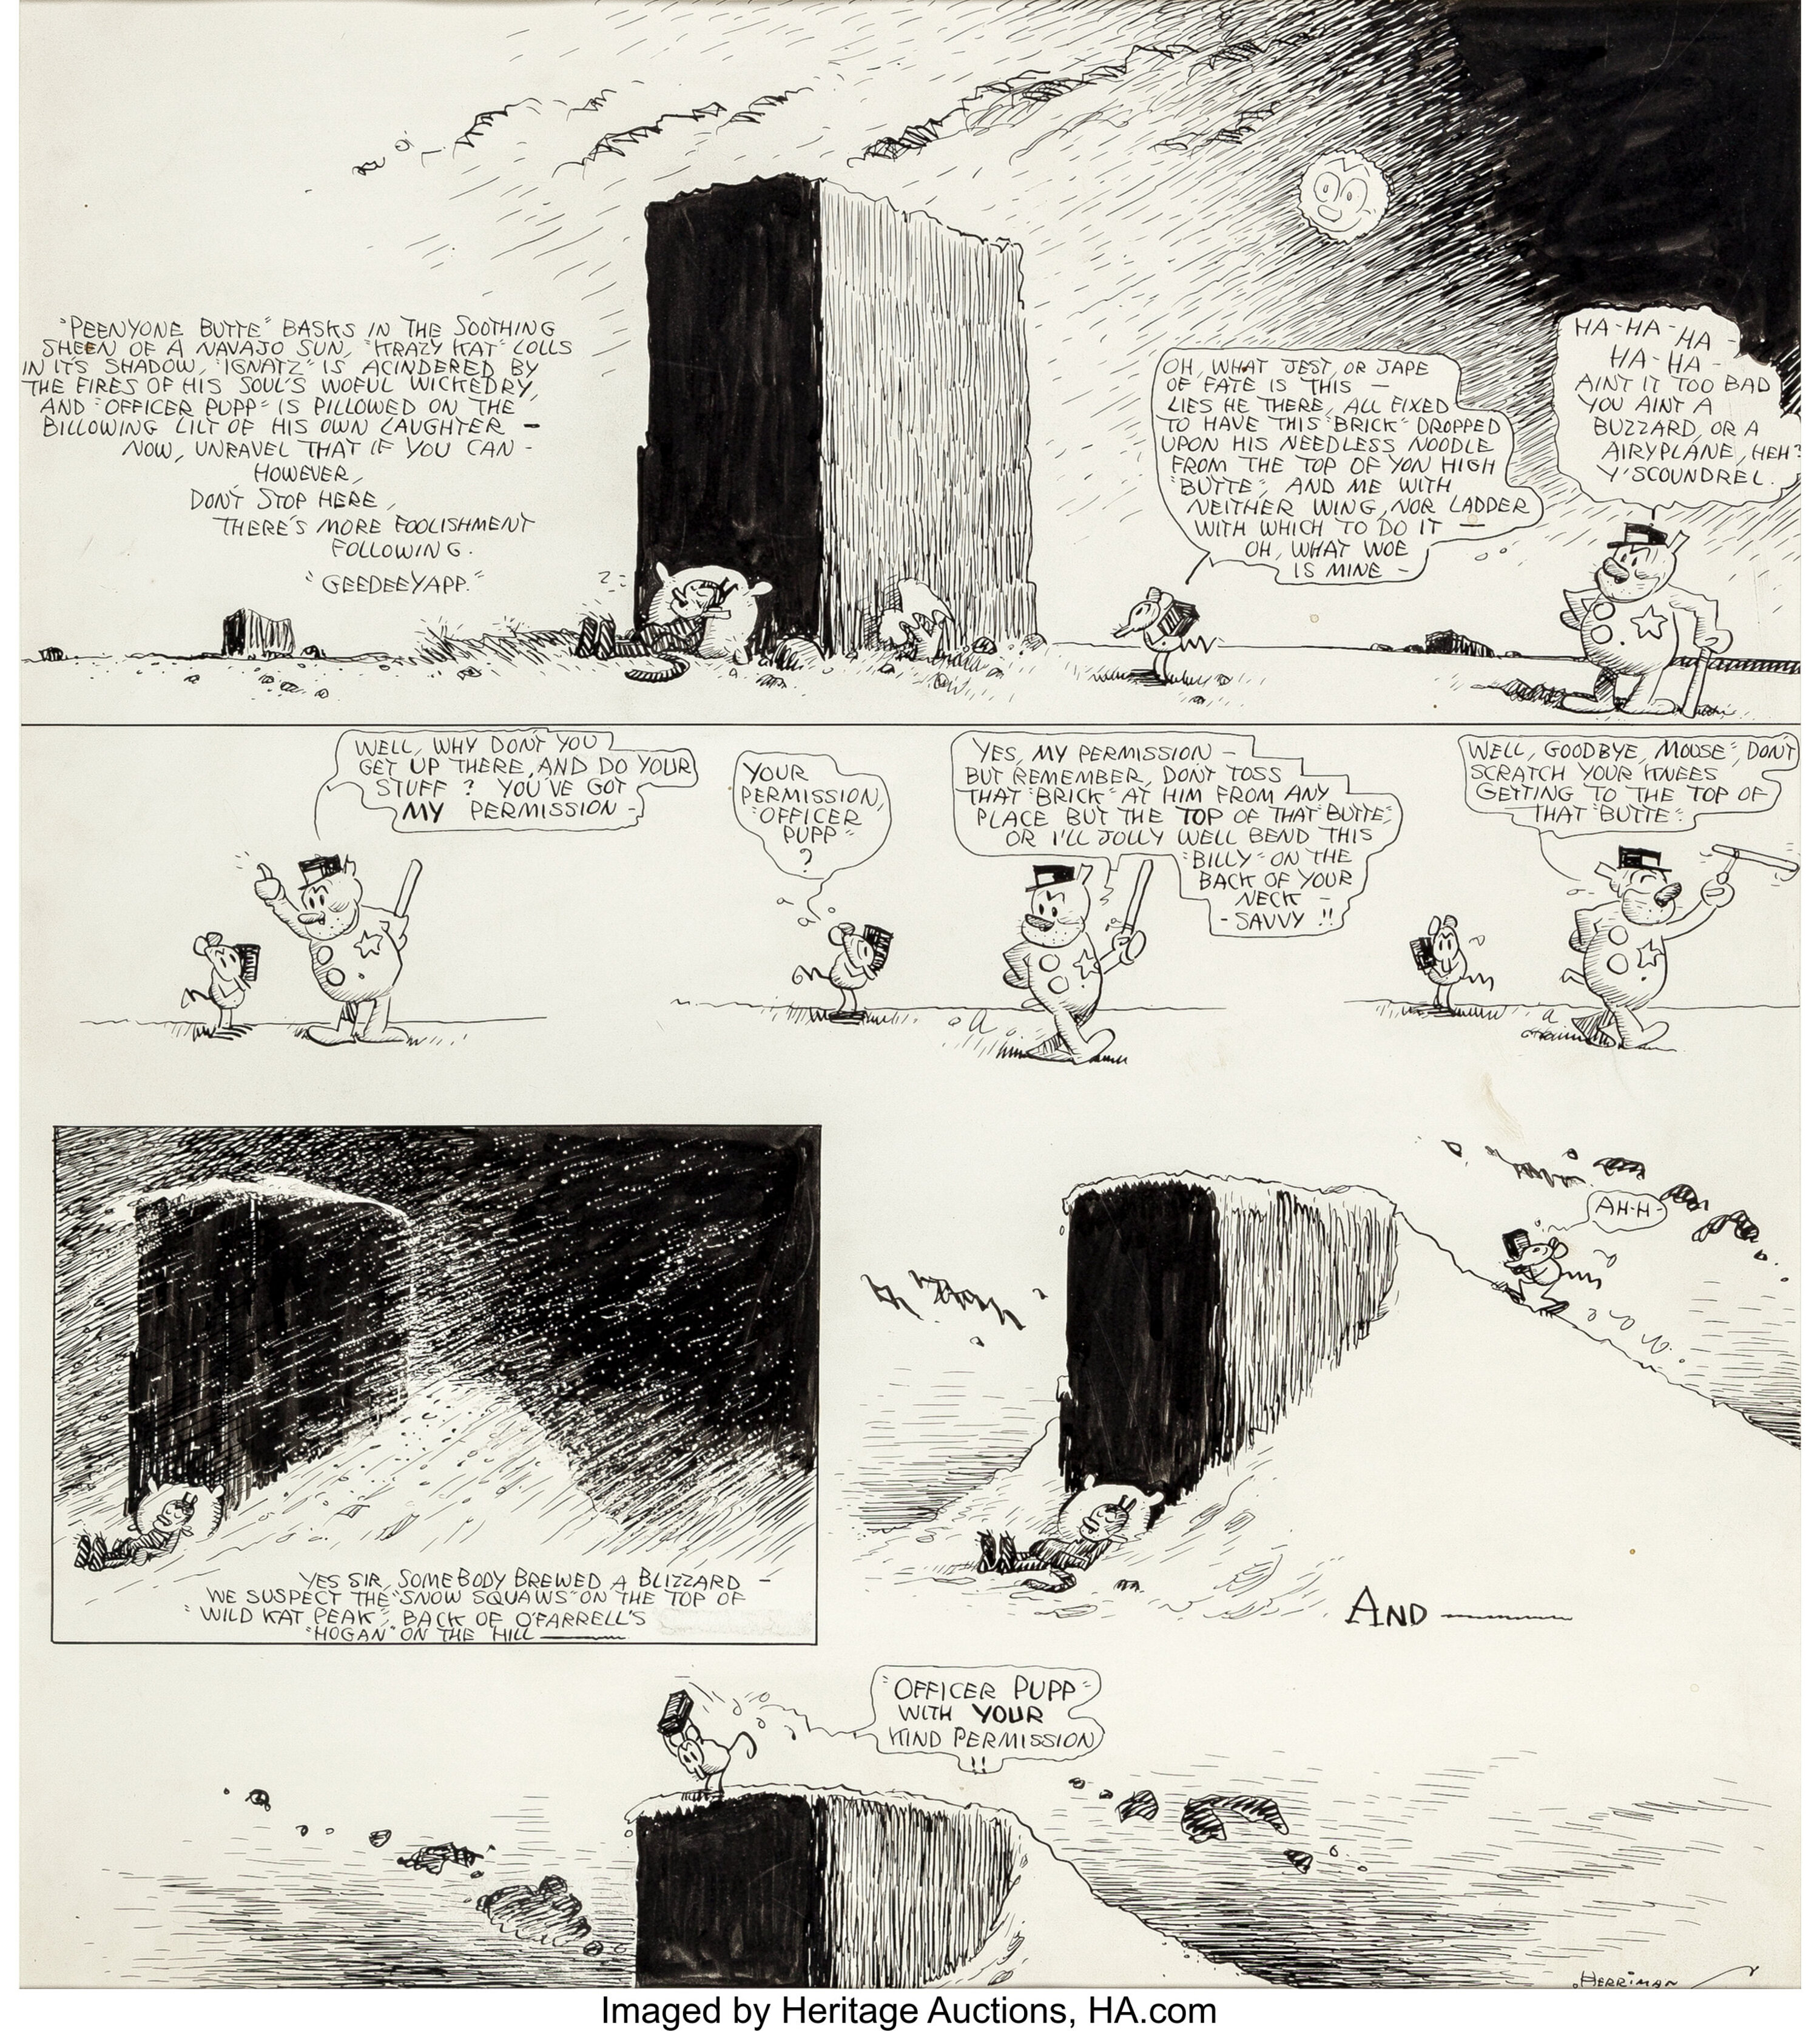 Reading Krazy Kat in the Public Domain